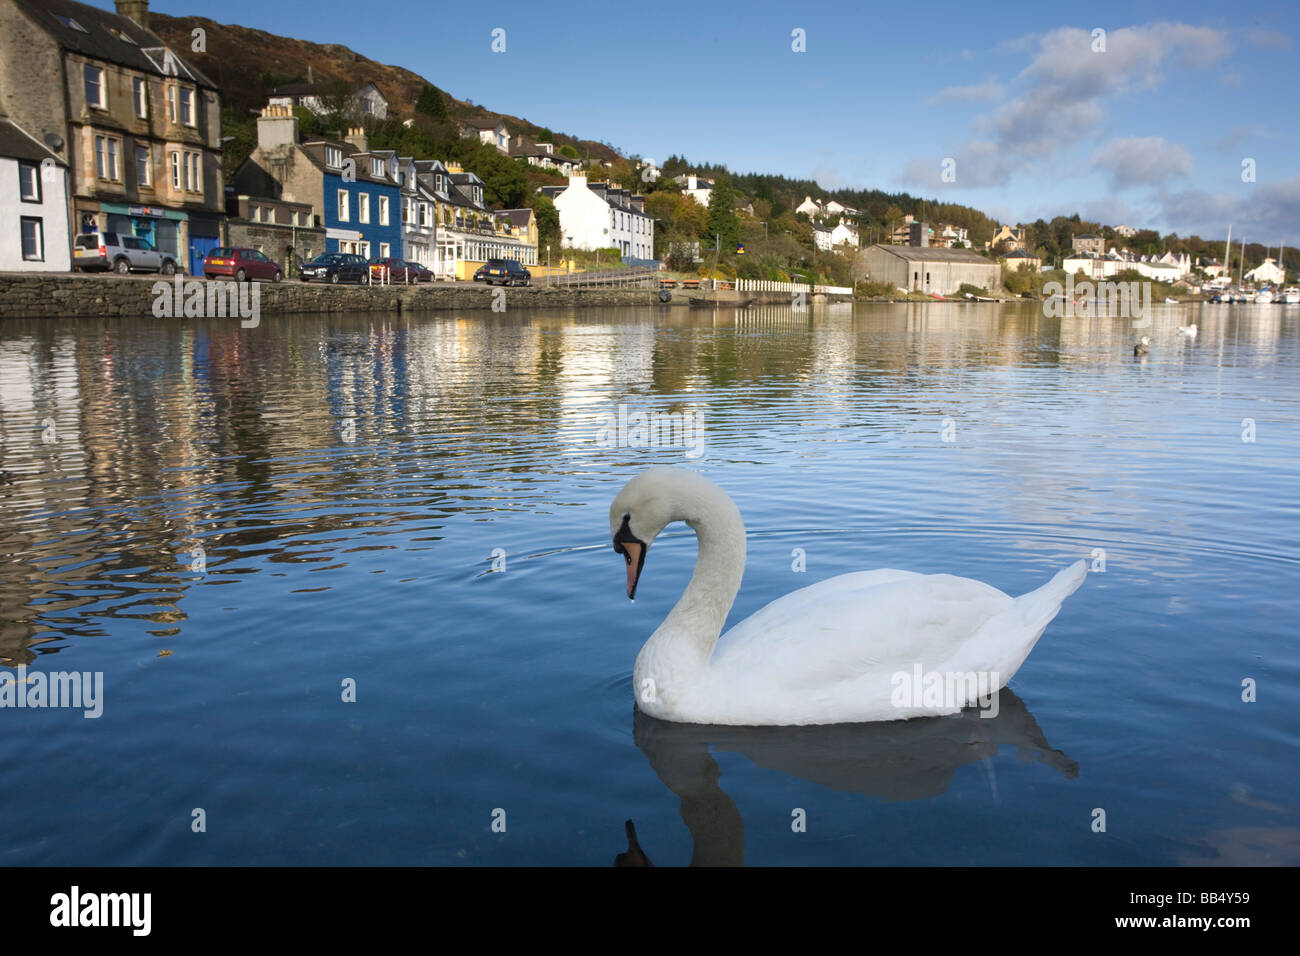 Swan and townscape; Tarbert, Scotland, UK - Stock Image